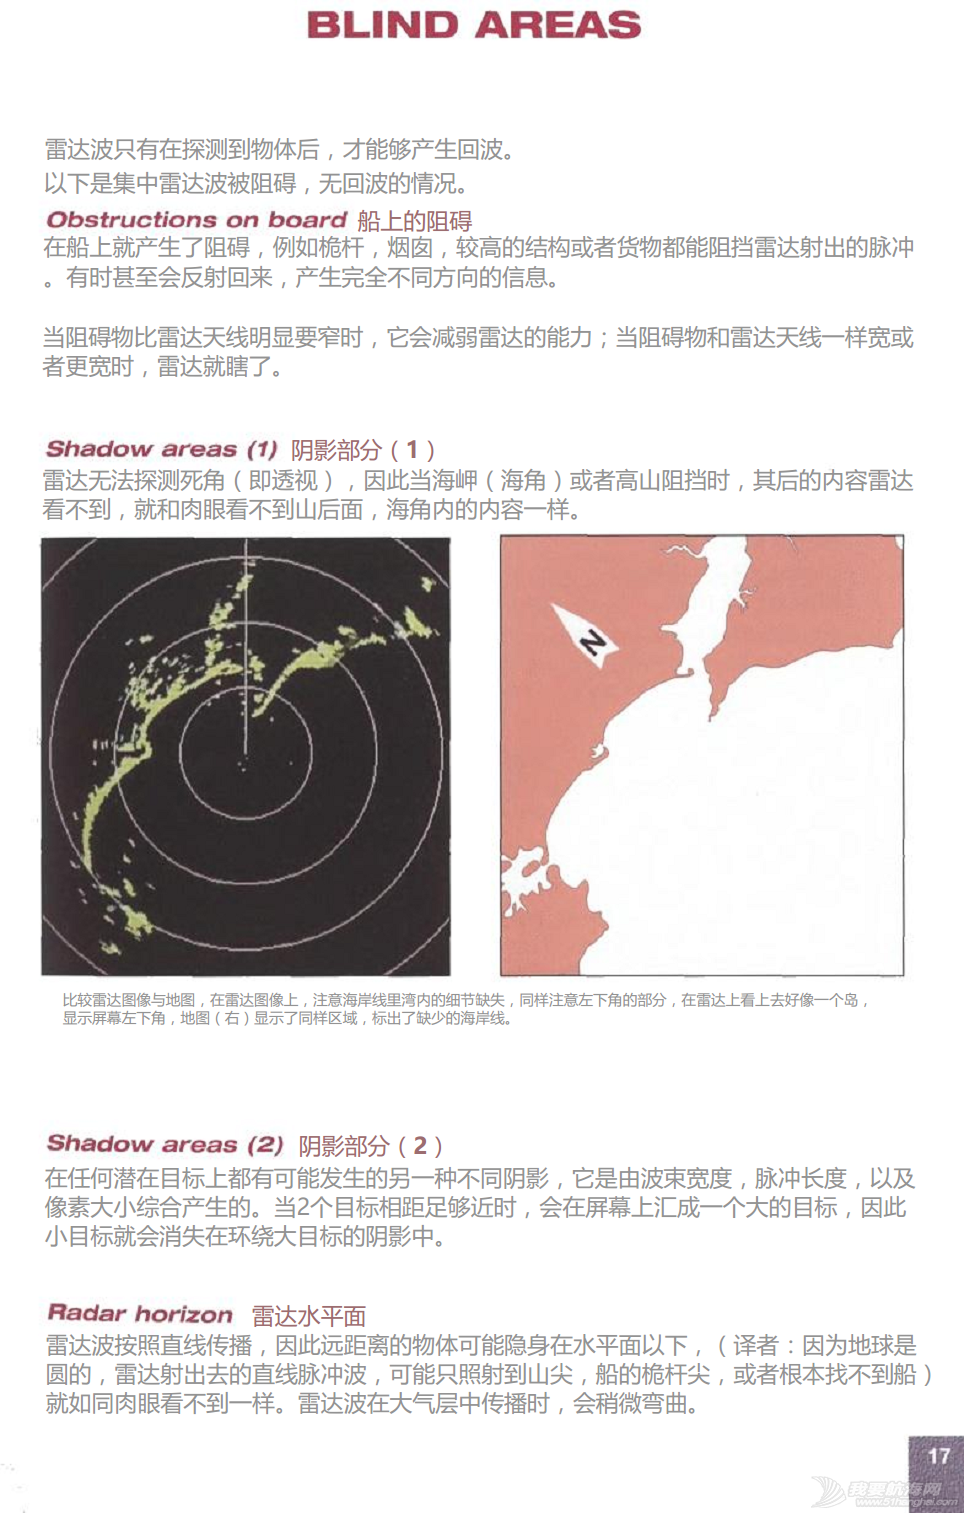 小伙伴,英文版,著作权,中文,帆船 ©RYA《雷达使用简介》An introduction to Radar.完稿 19